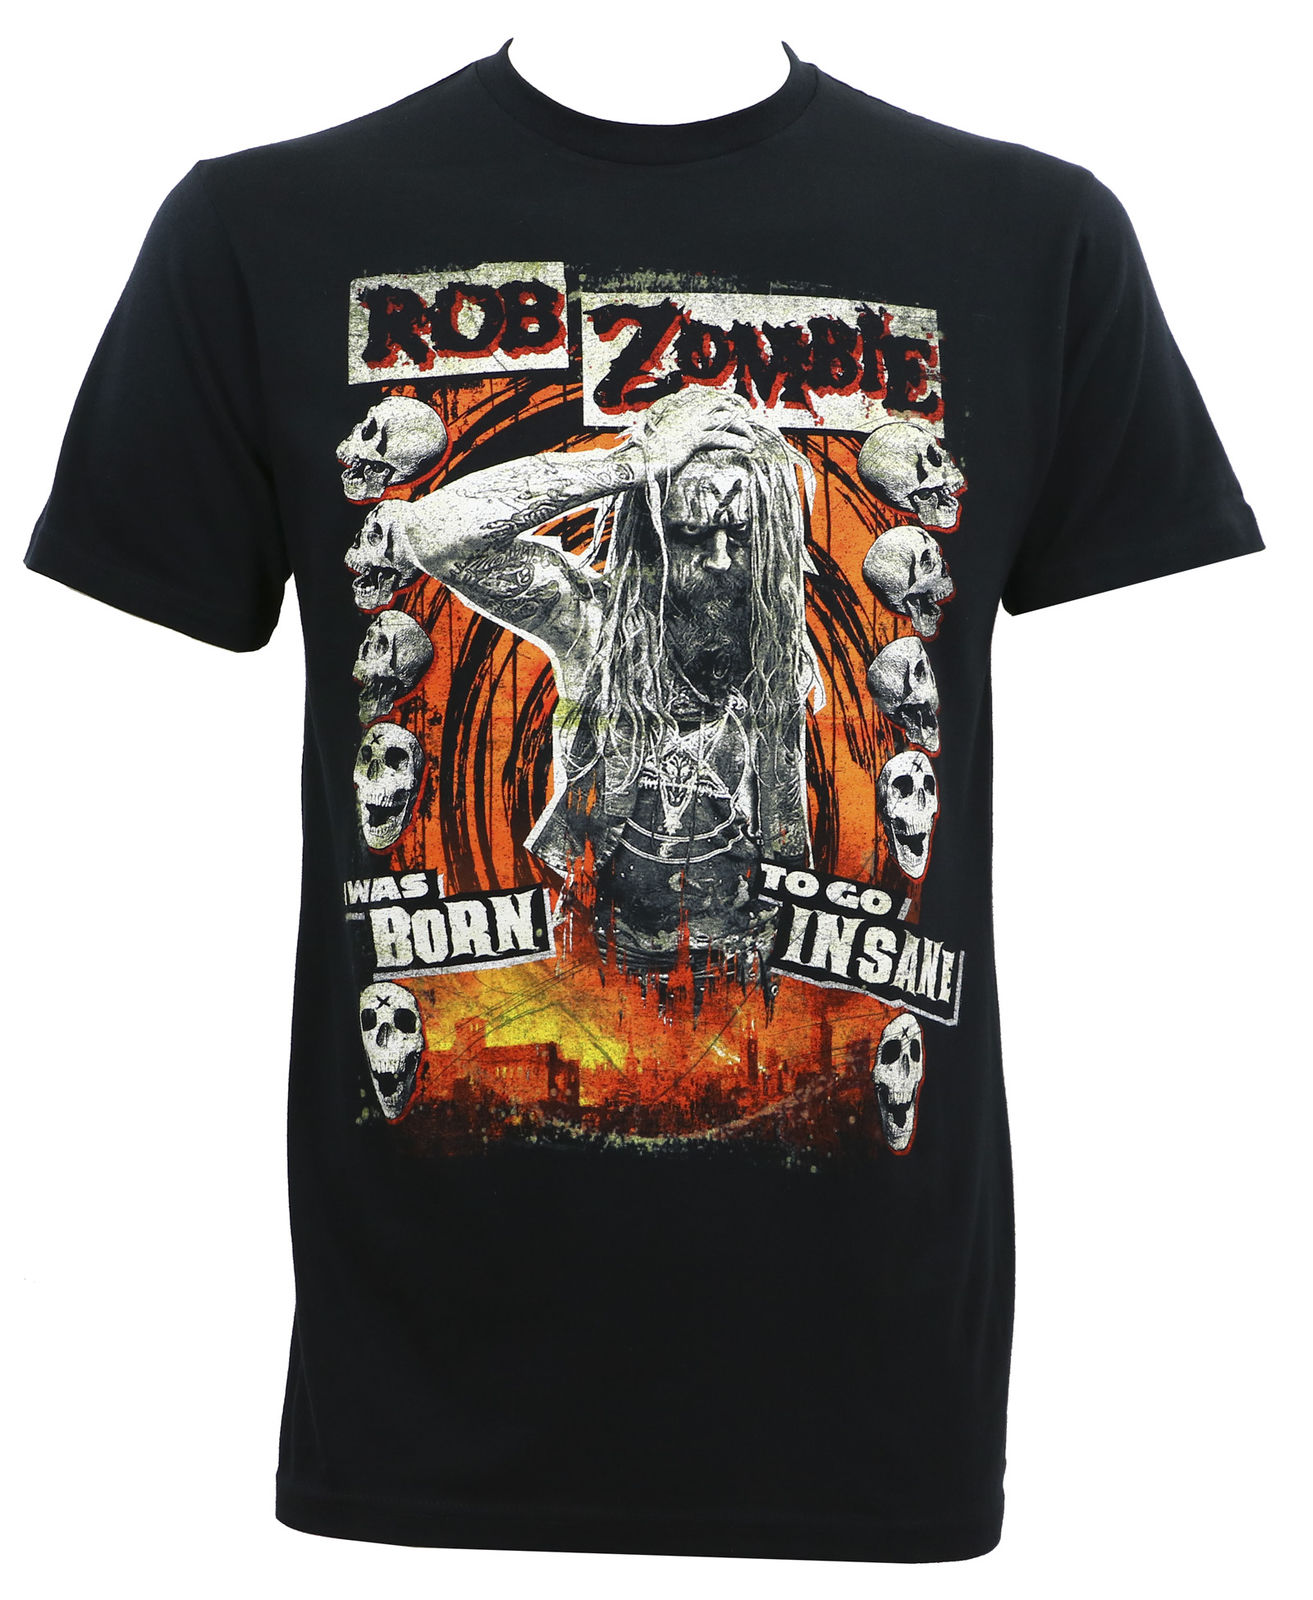 Authentic ROB ZOMBIE Born To Go Insane Slim-Fit T-Shirt S M L XL 2XL 3XL NEW Summer Short Sleeves Cotton T Shirt Fashion